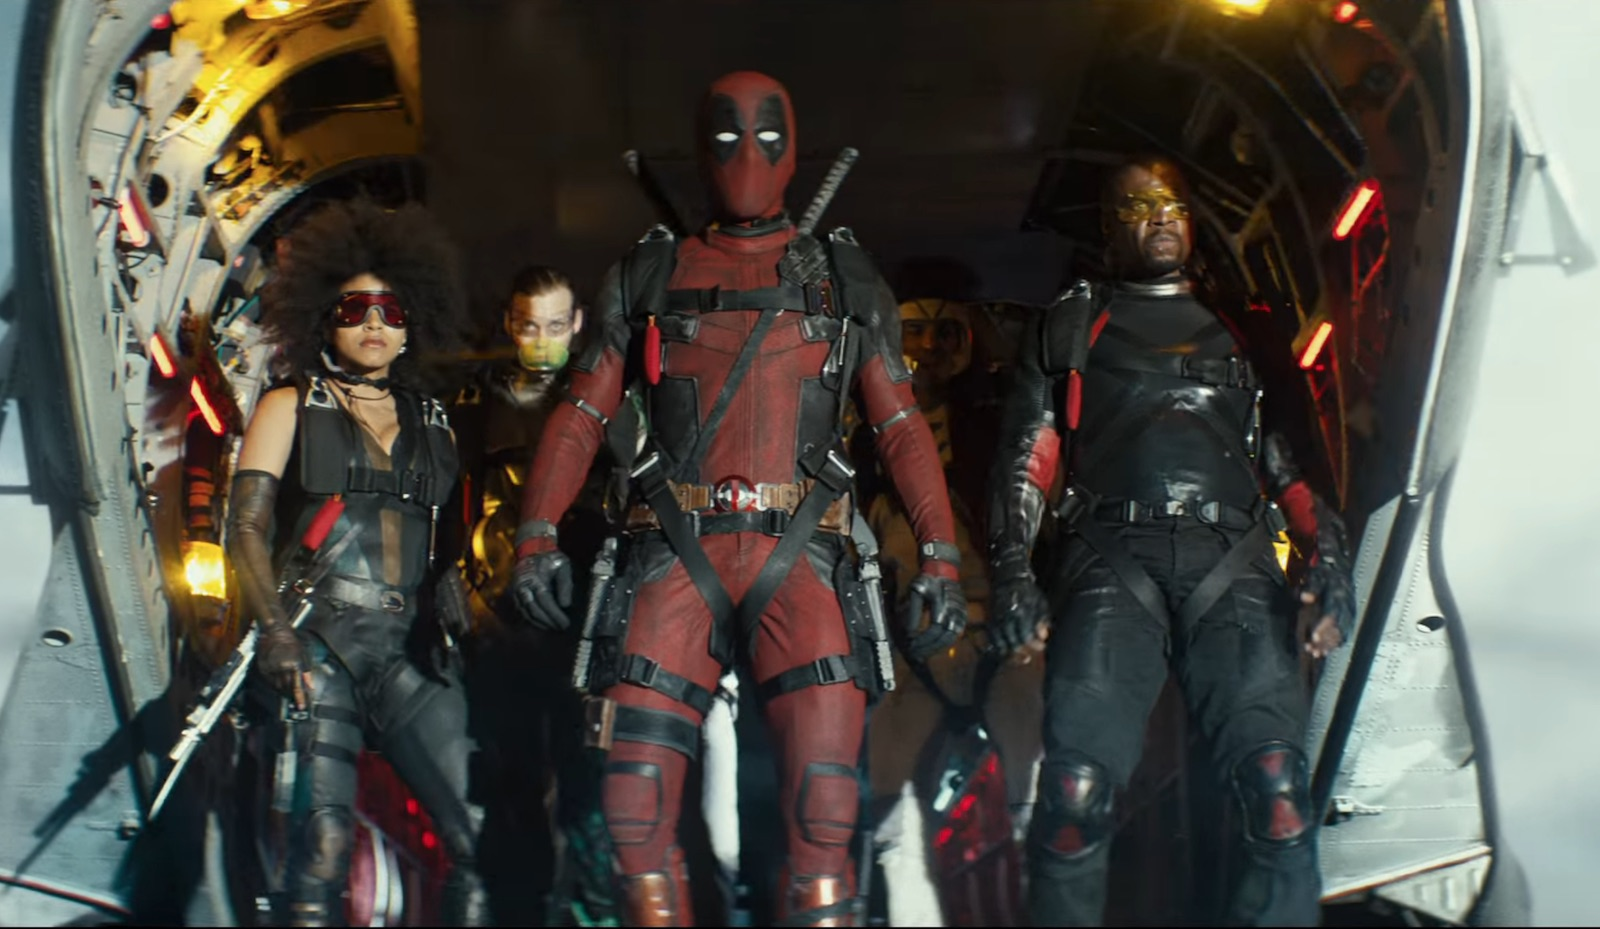 DEADPOOL 2 trailer promises to be twice as loud, amusing and chaotic